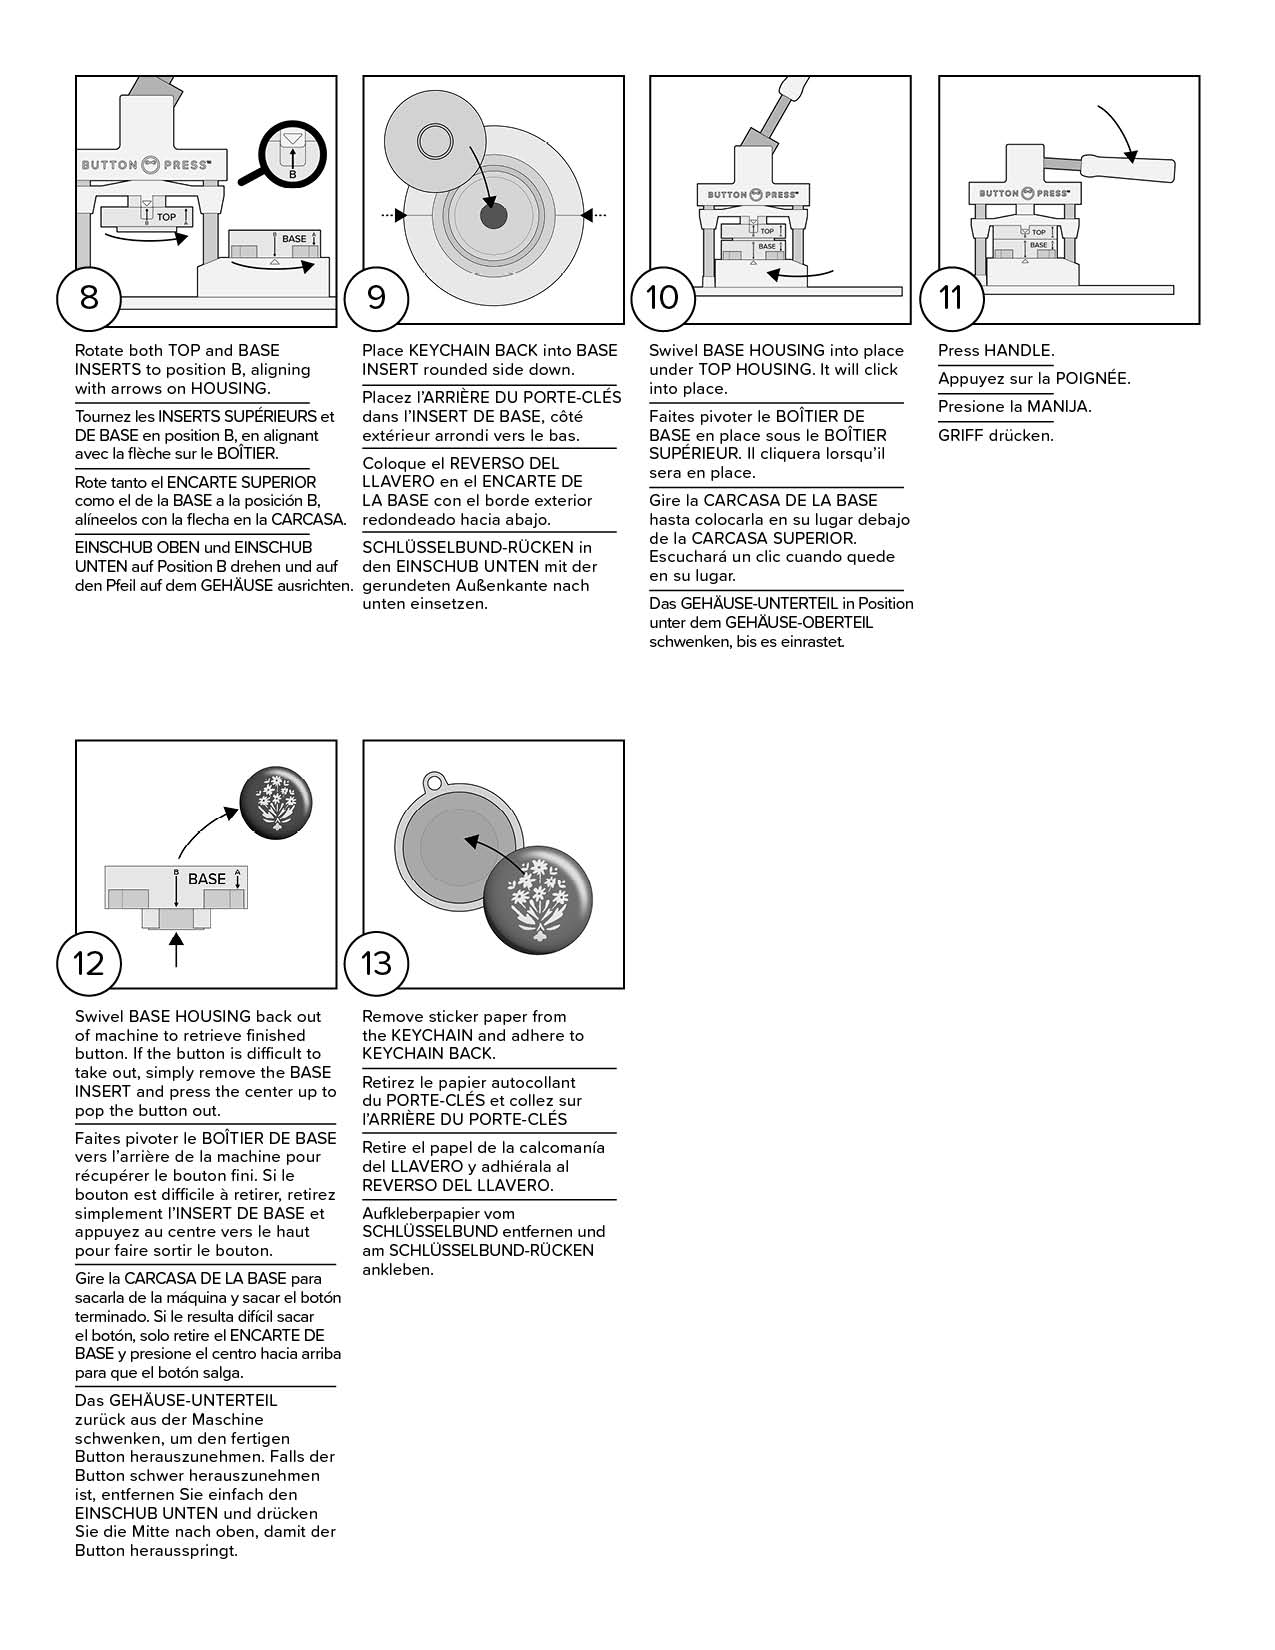 661074_WR_ButtonPress_KeychainKit_Instructions2